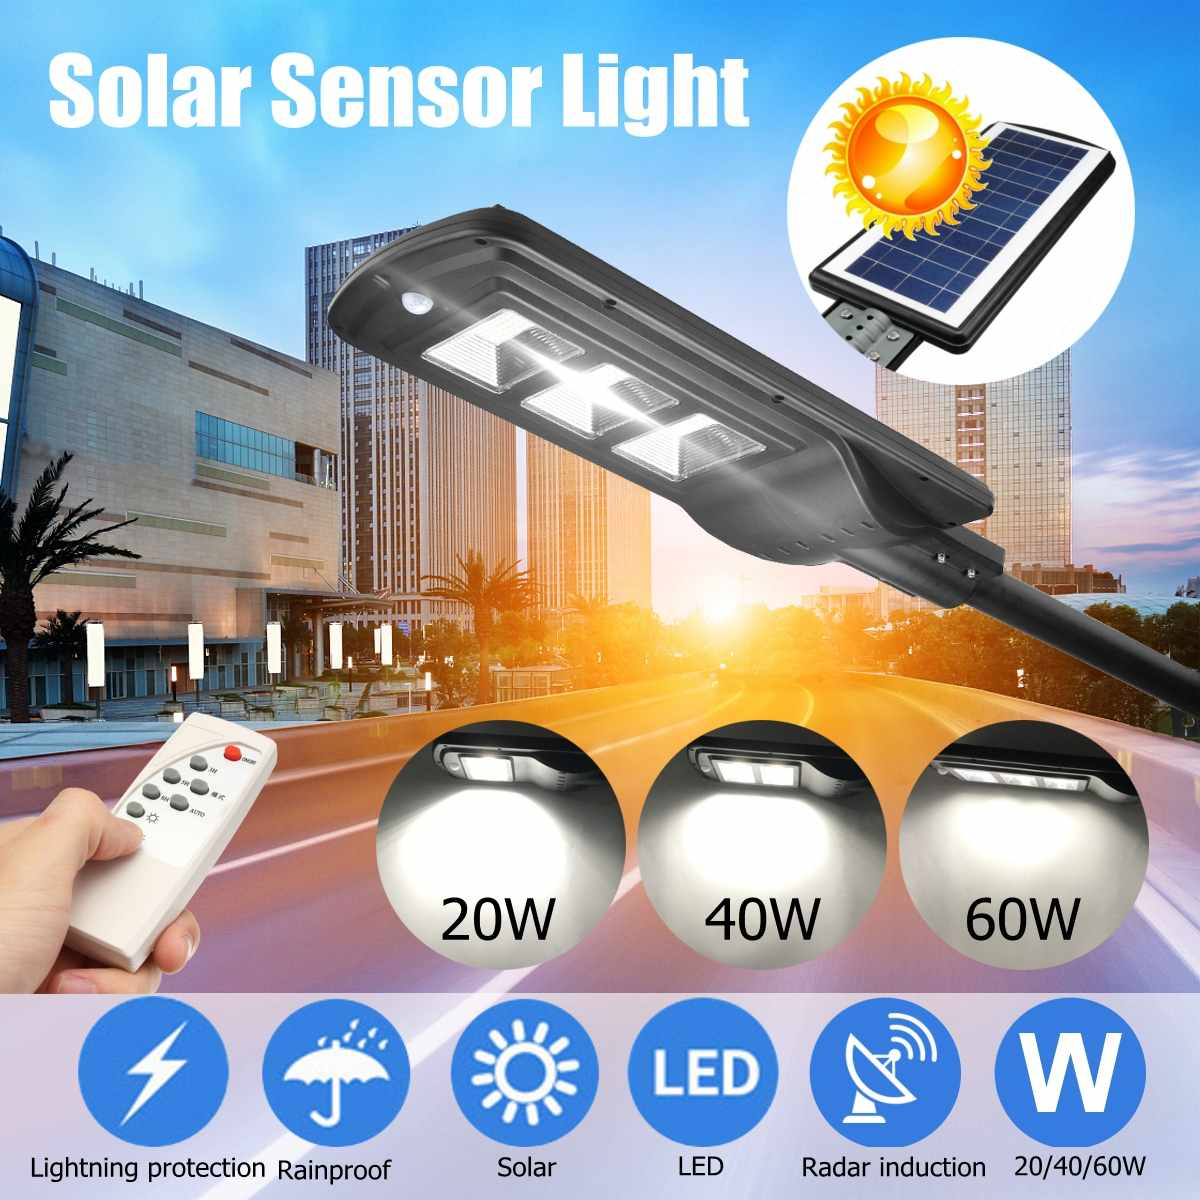 60/40/20W PIR Motion Solar Sensor LED Wall Street Light Lighting Waterproof Remote Control Lamp for Outdoor Garden Courtyard60/40/20W PIR Motion Solar Sensor LED Wall Street Light Lighting Waterproof Remote Control Lamp for Outdoor Garden Courtyard